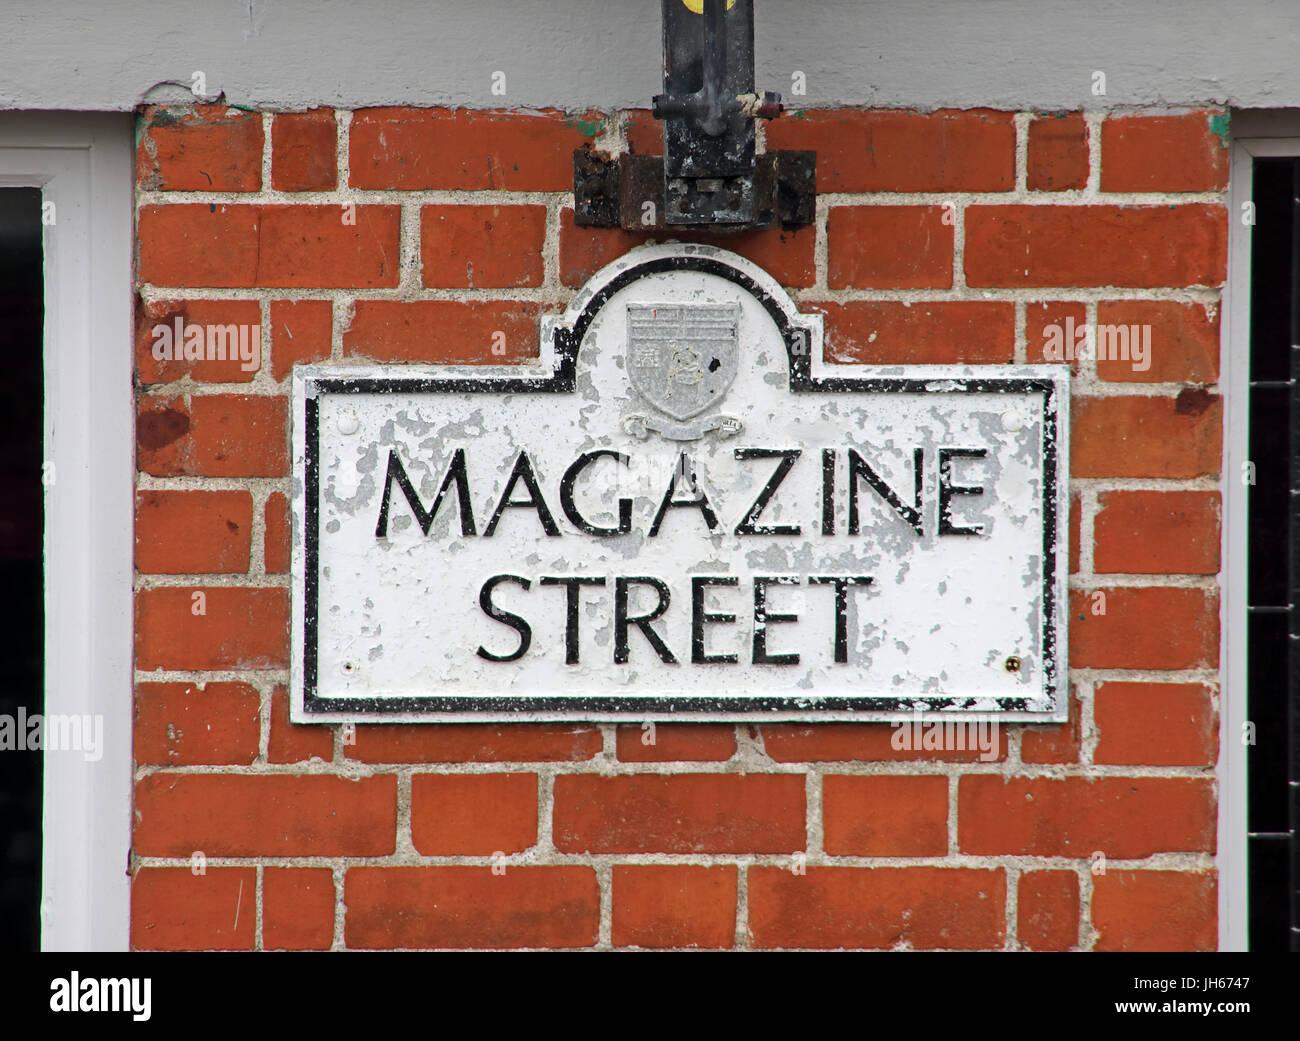 Magazine St,Londonderry city Northern Ireland - Stock Image